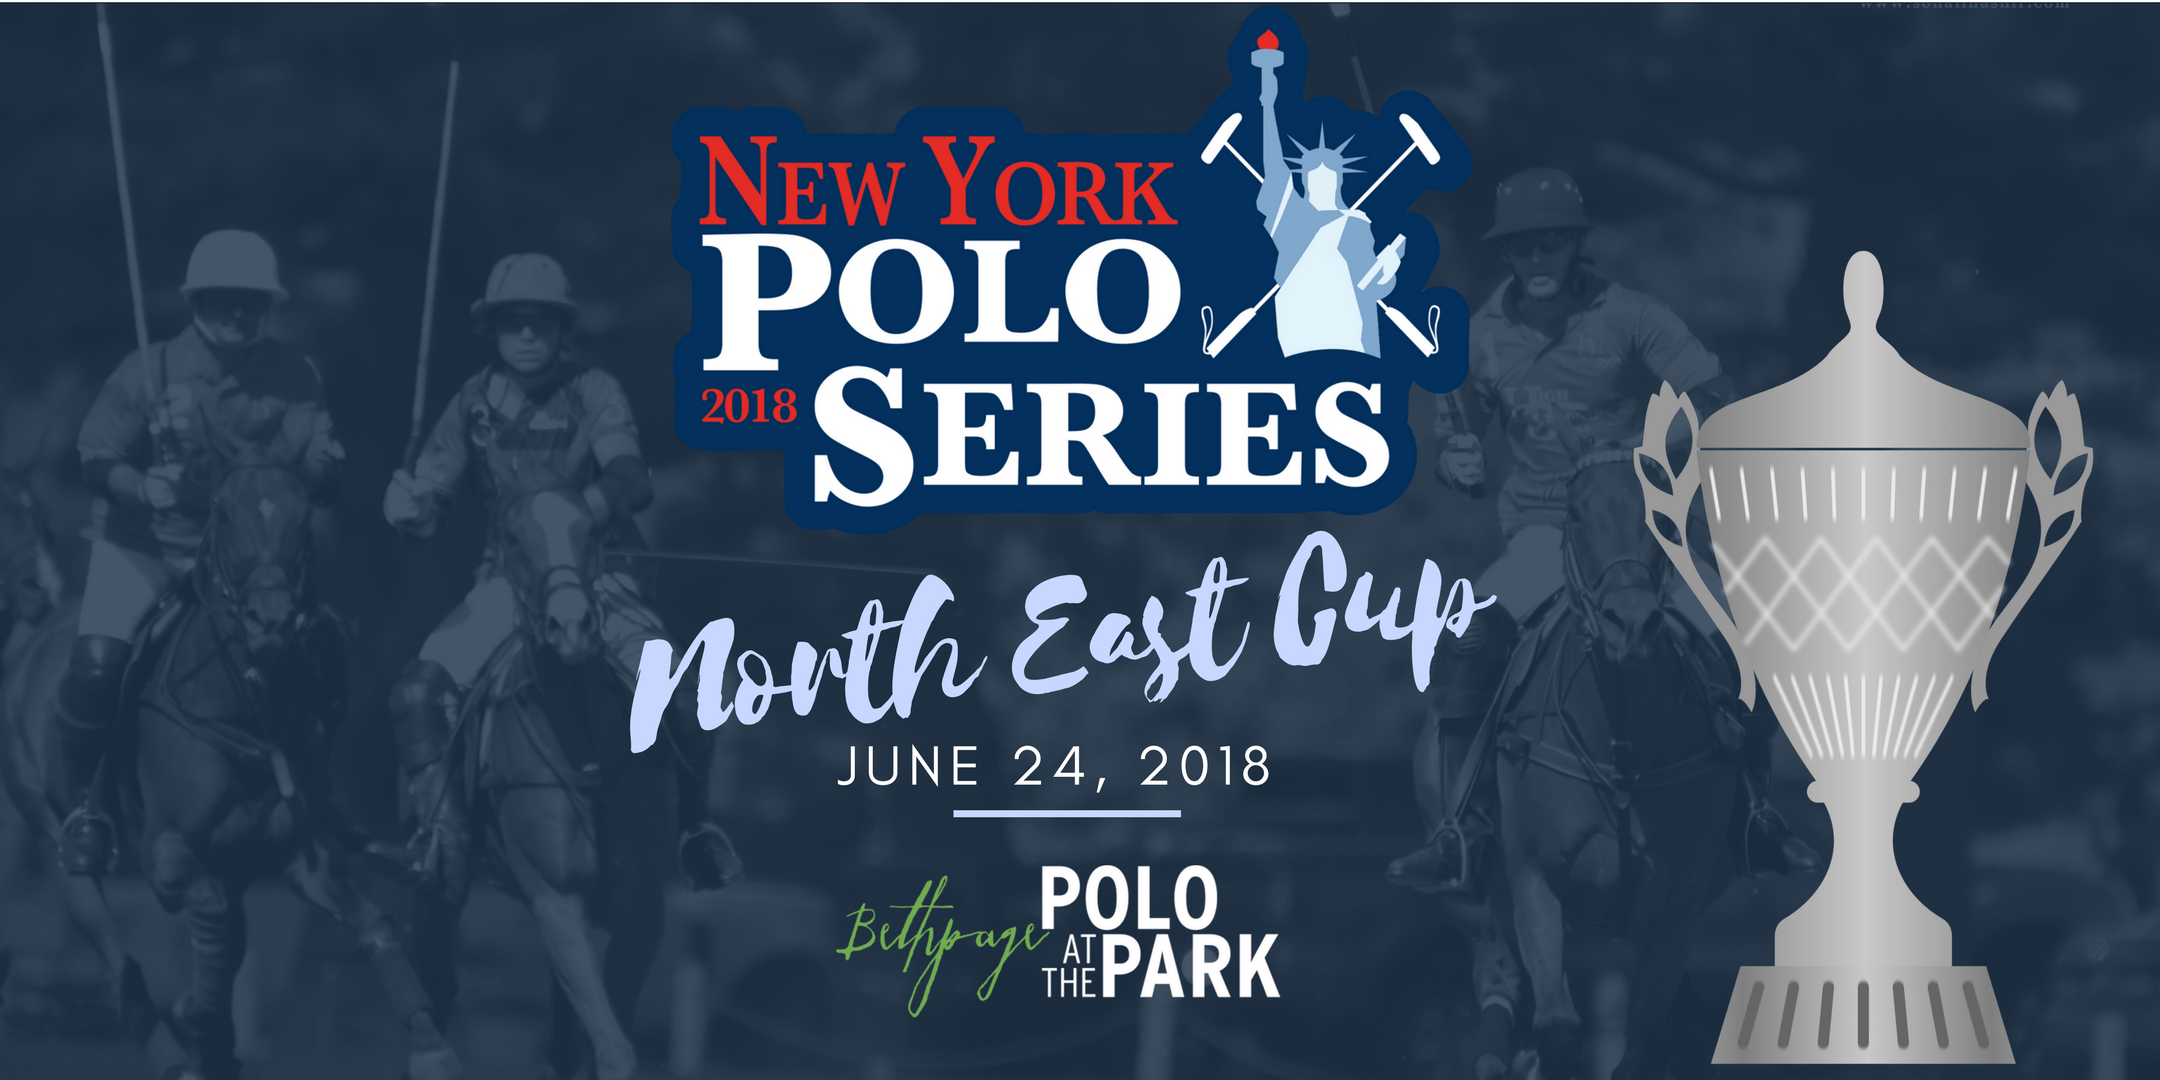 New York Polo Series (6/24 North East Cup)